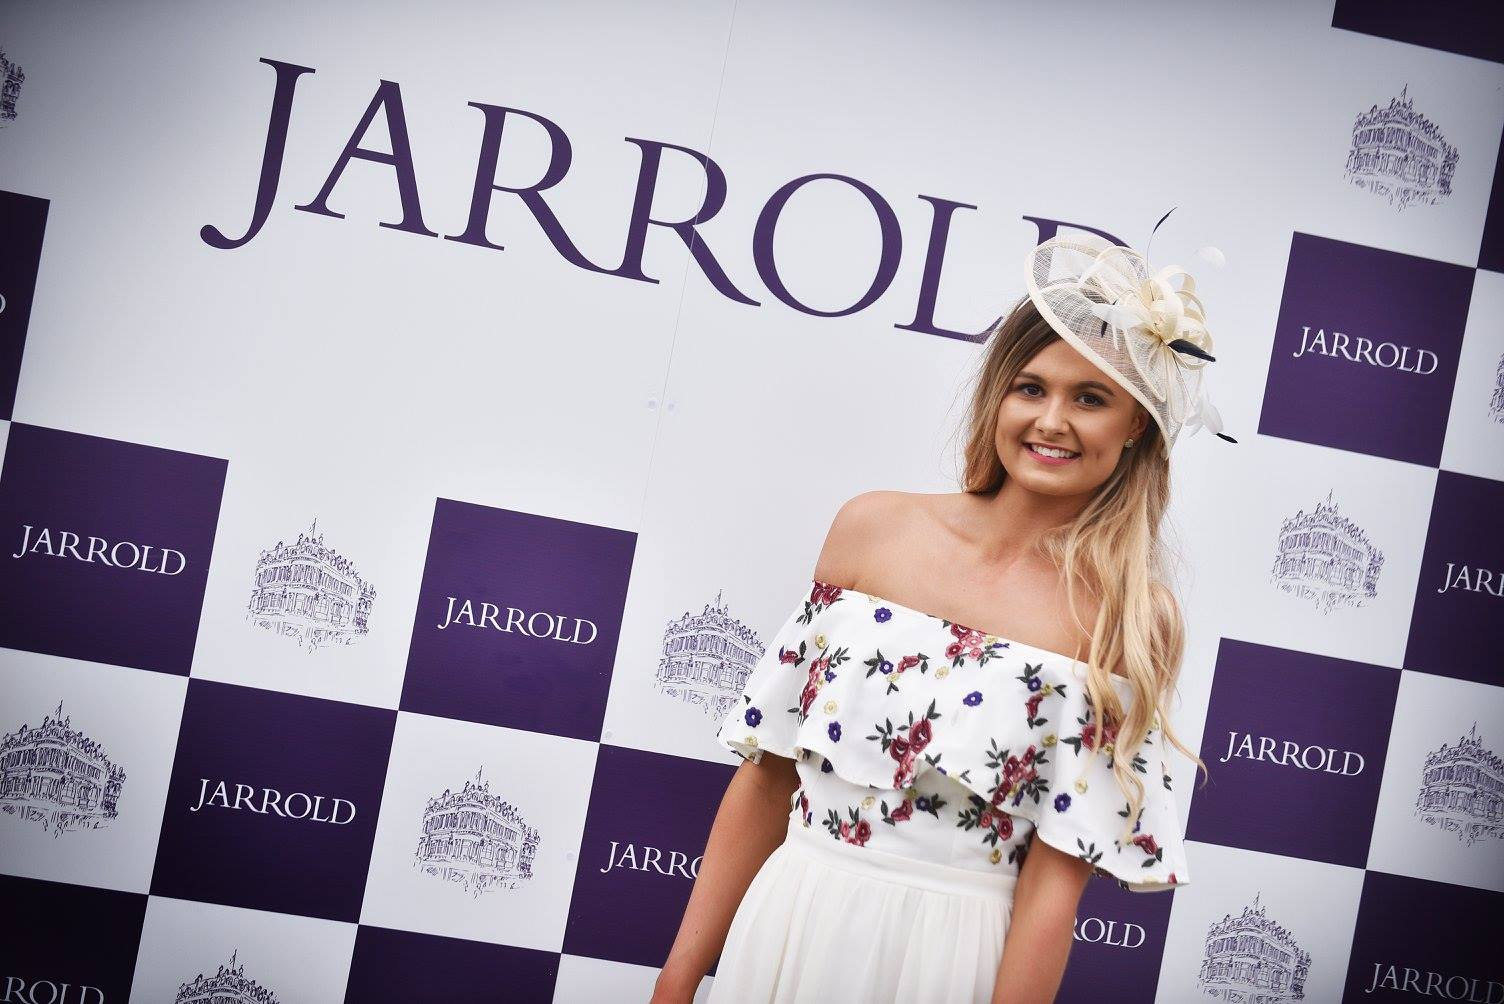 Annual Jarrold Ladies Day at Fakenham Races